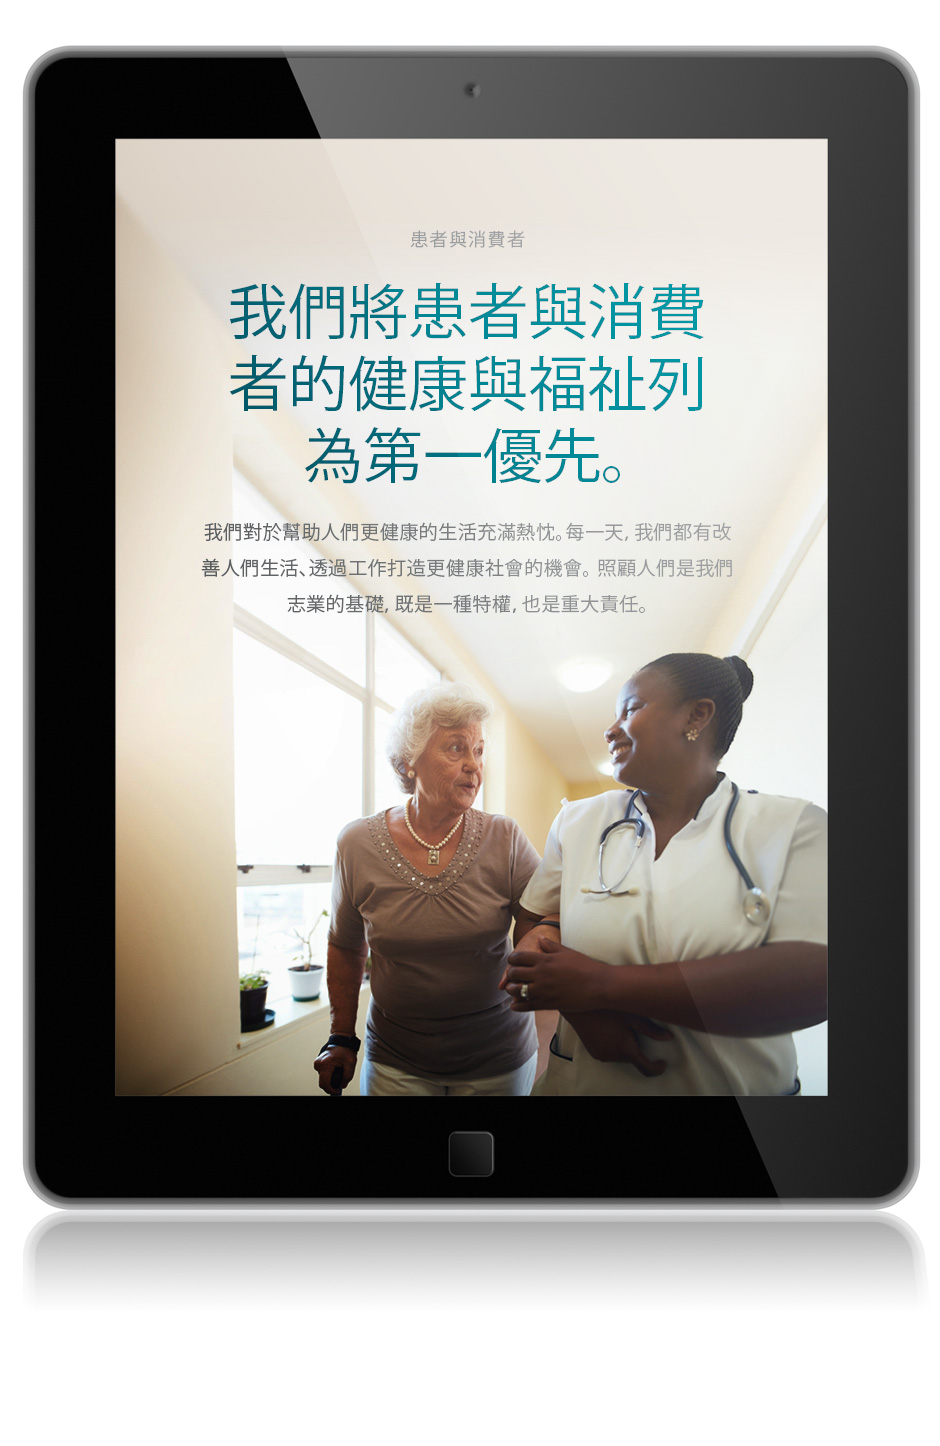 OurWork_Train75k_iPad_Chinese.jpg